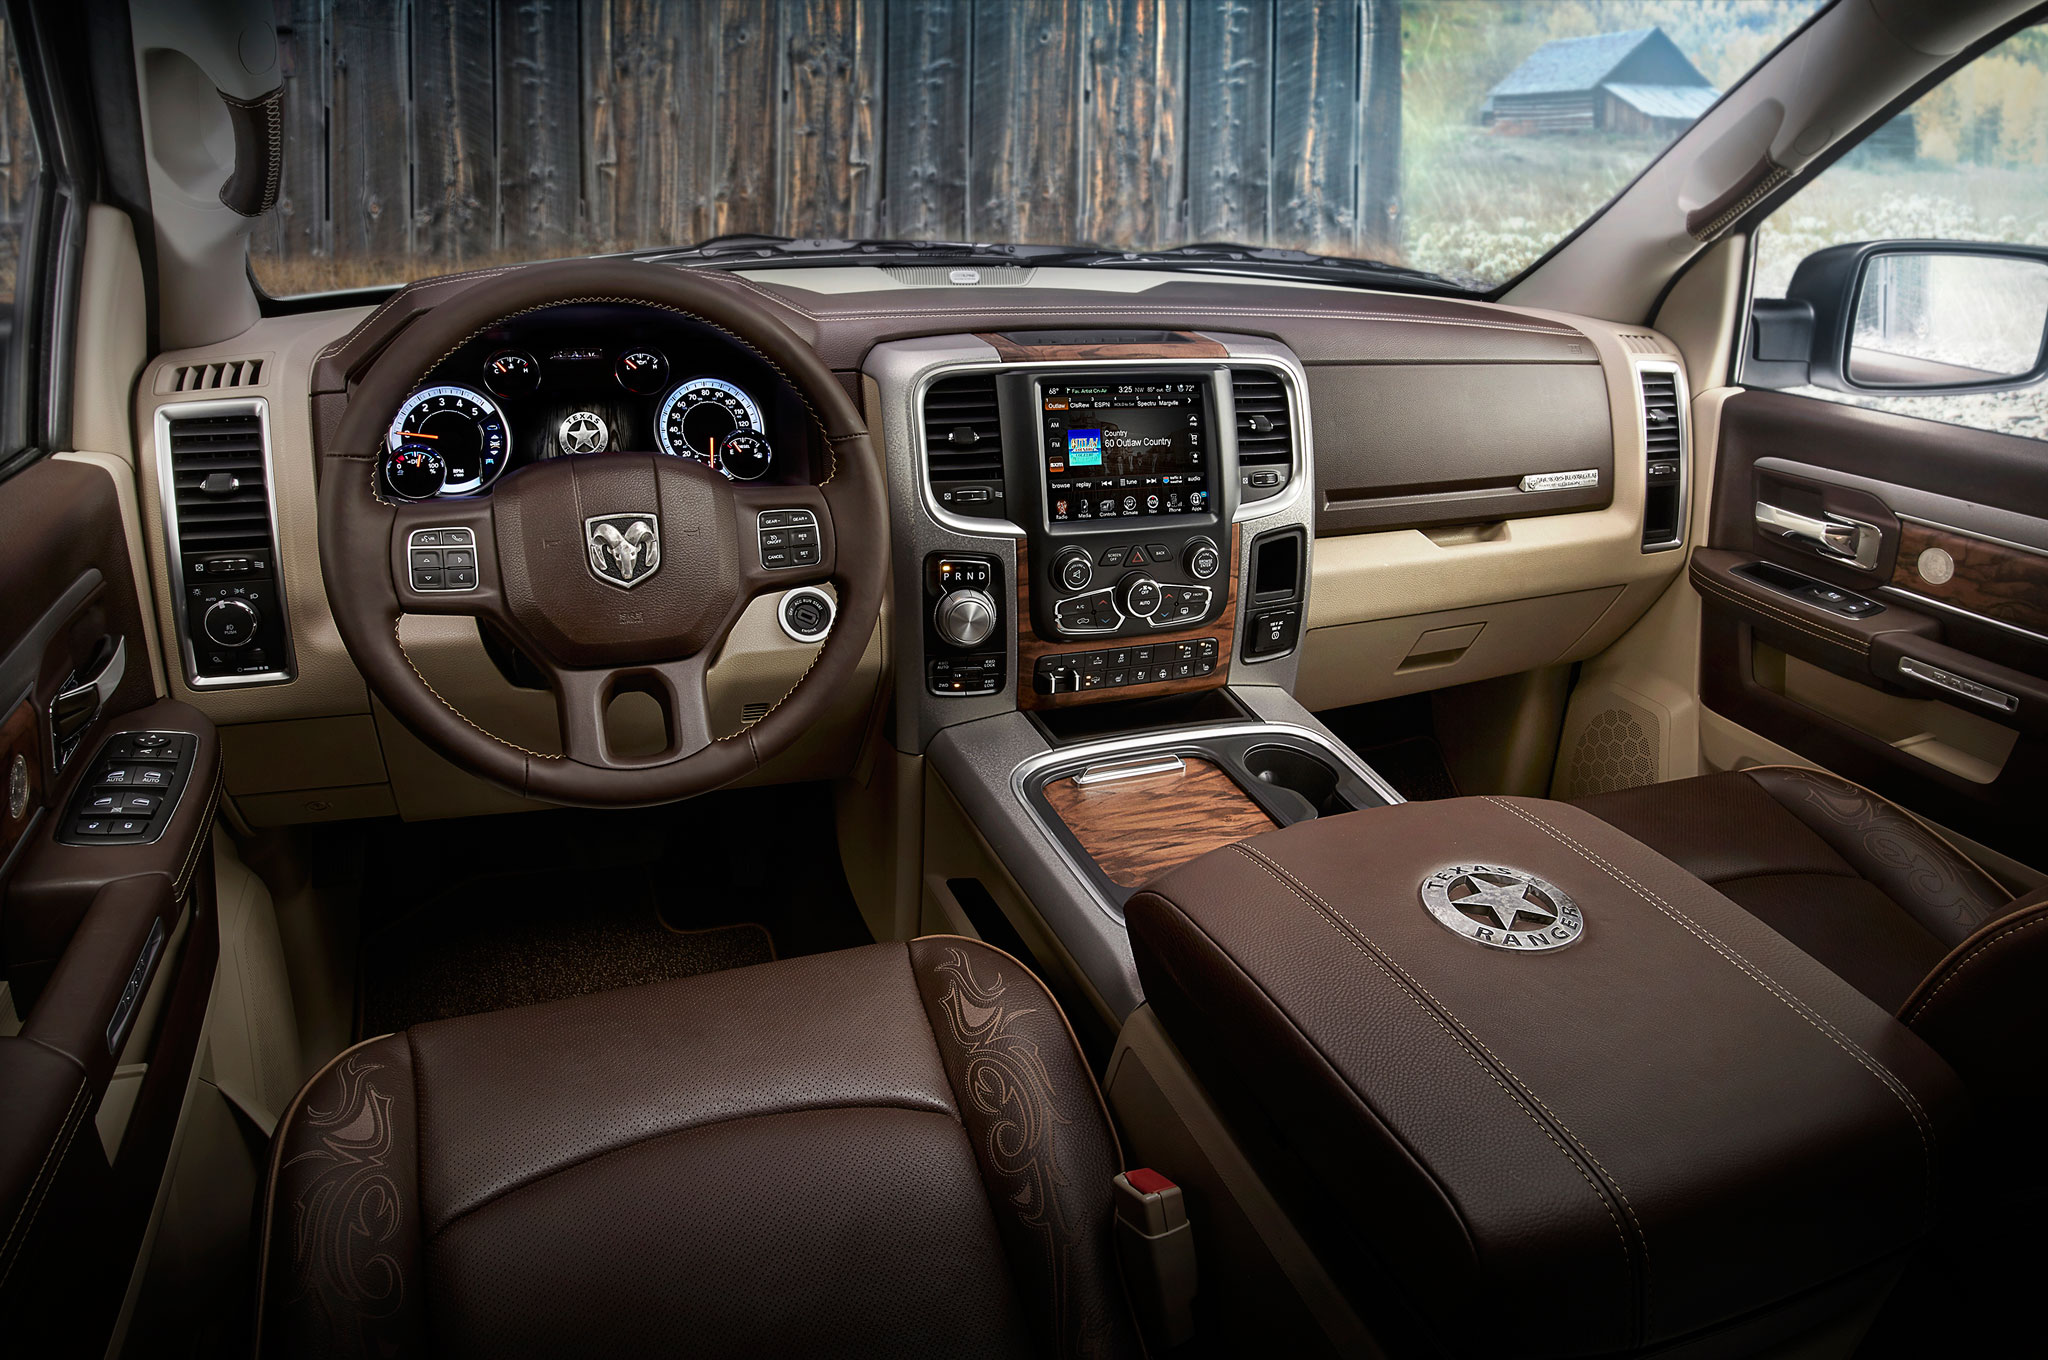 Ram 1500 Texas Ranger Concept Truck Revealed in Dallas